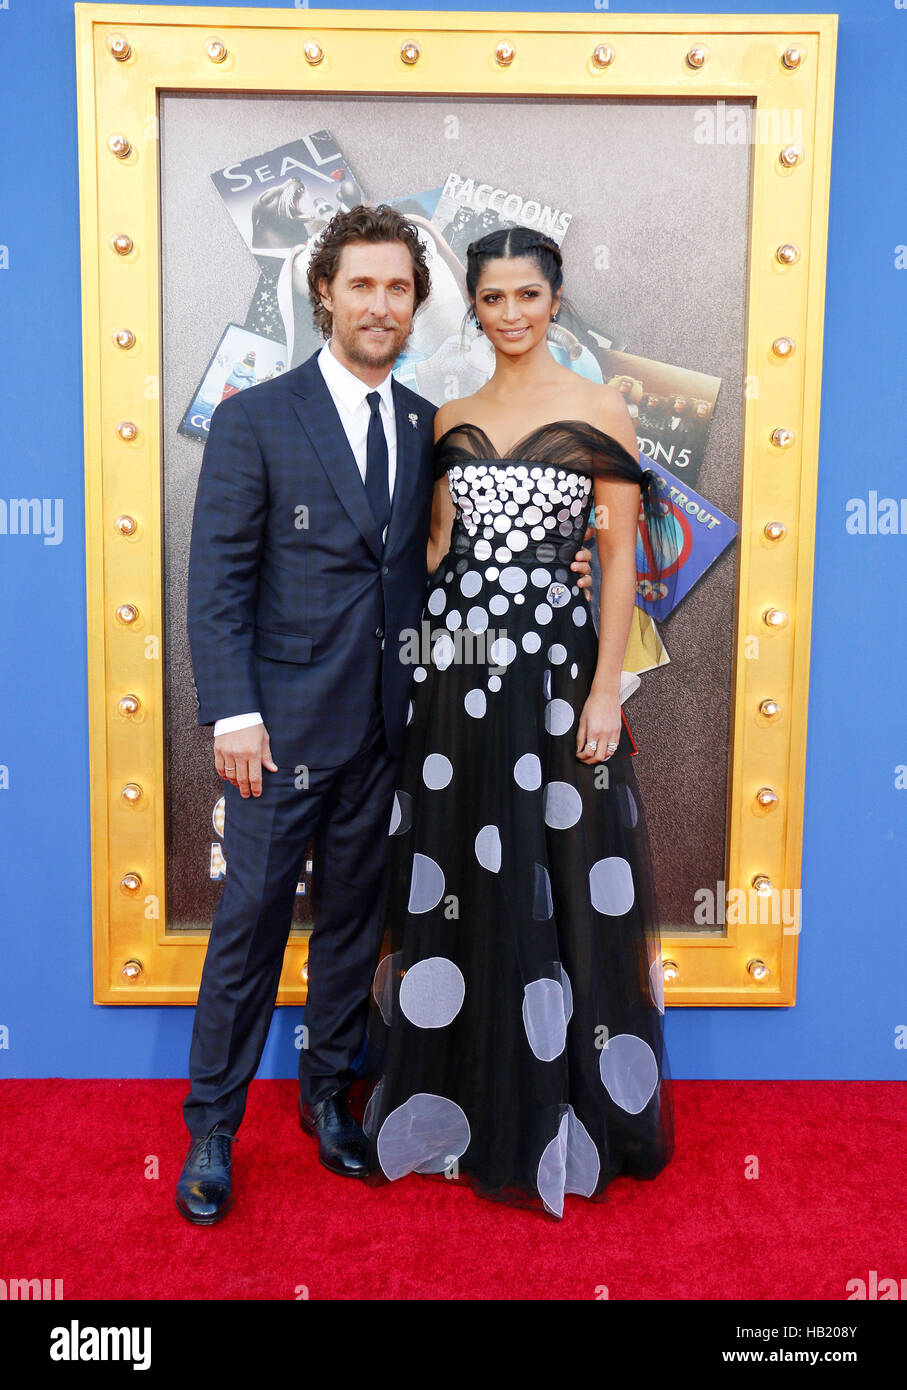 Los Angeles, California, USA. 3rd Dec, 2016. Matthew McConaughey and Camila Alves at the Los Angeles premiere of - Stock Image